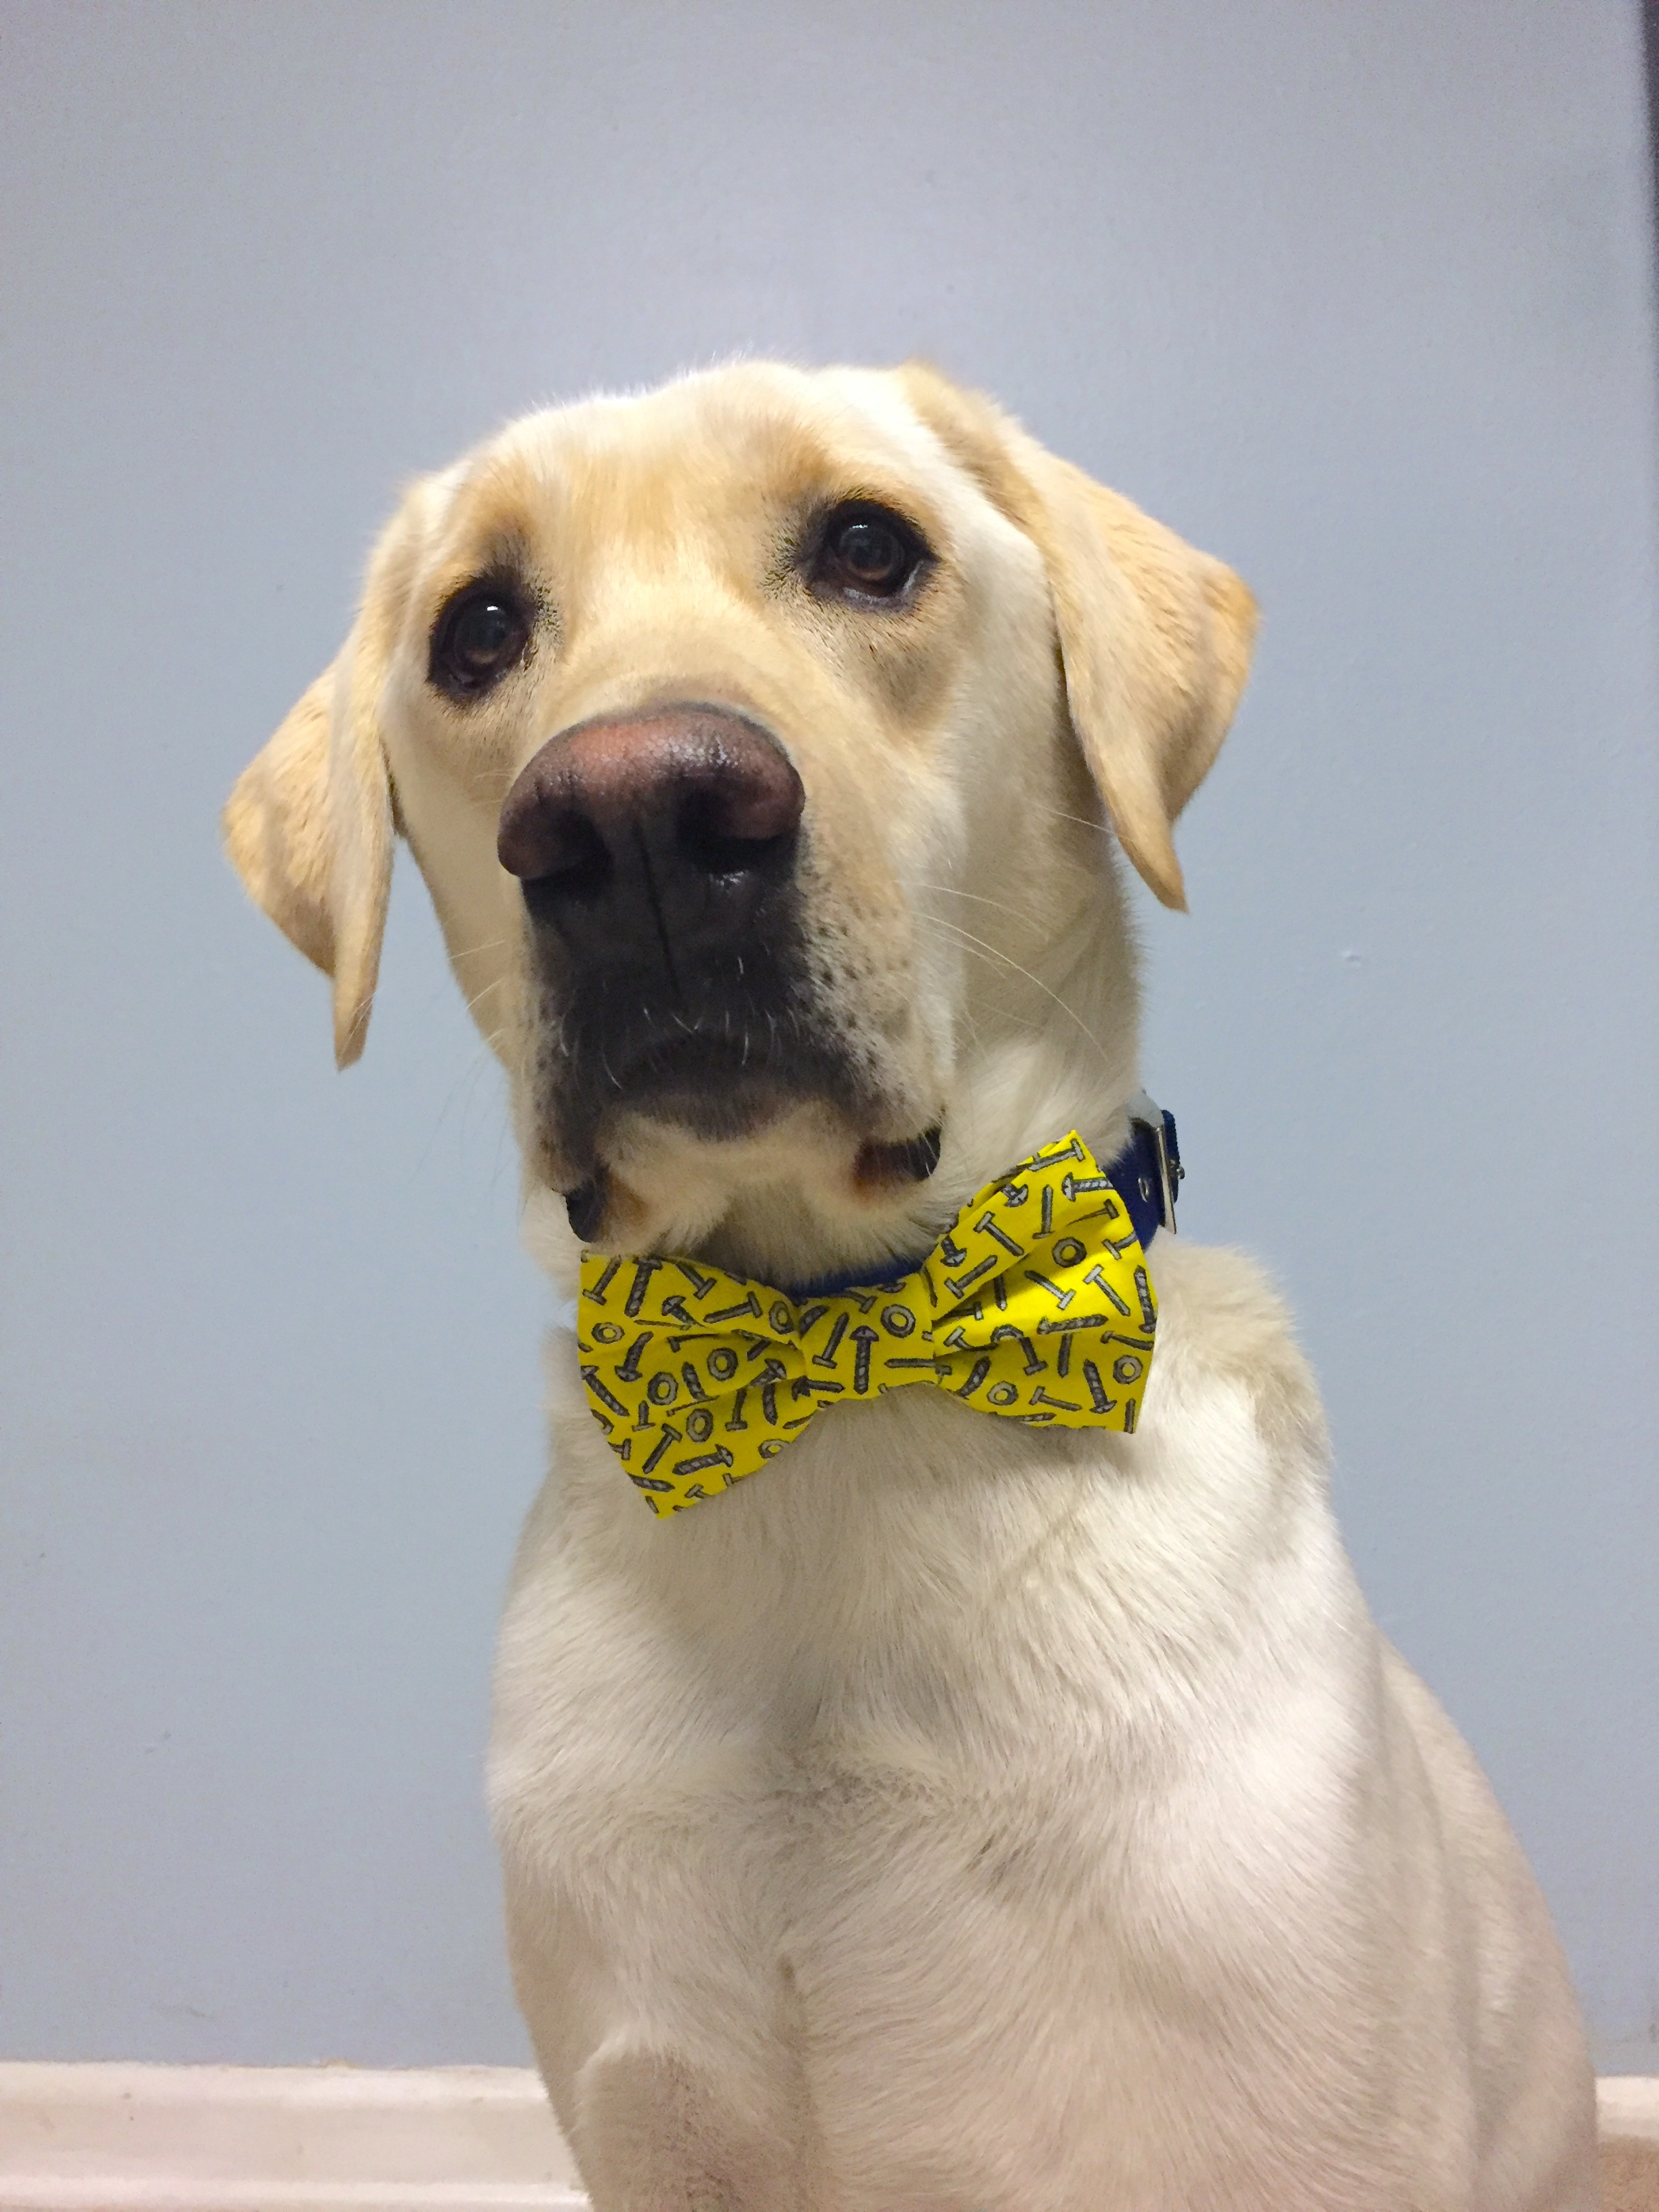 Drill Bit the Labrador retriever, wearing a bowtie